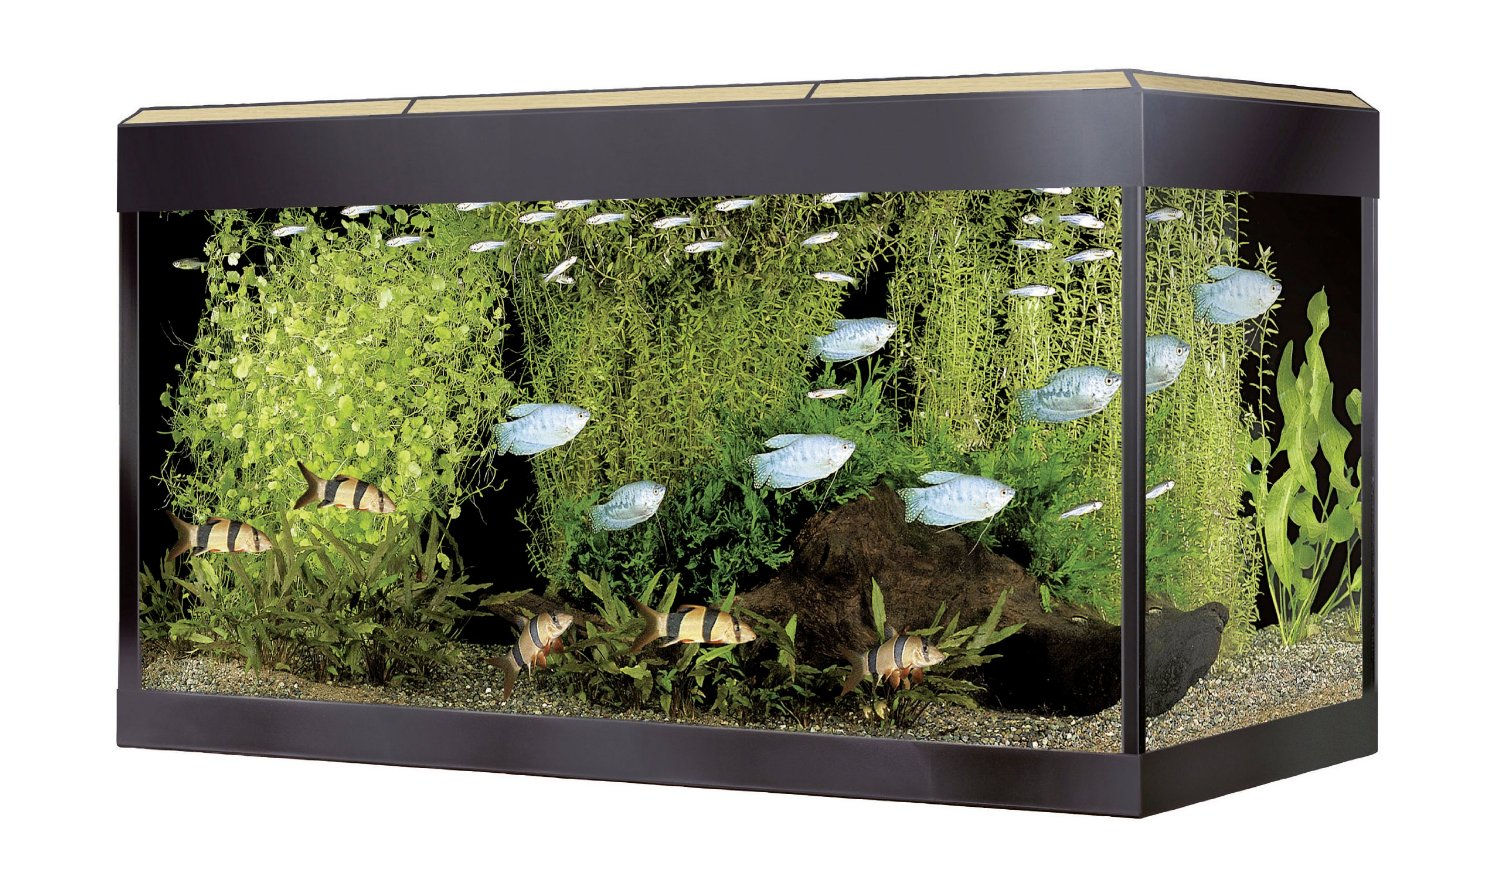 Fluval roma aquarium for Fluval fish tank